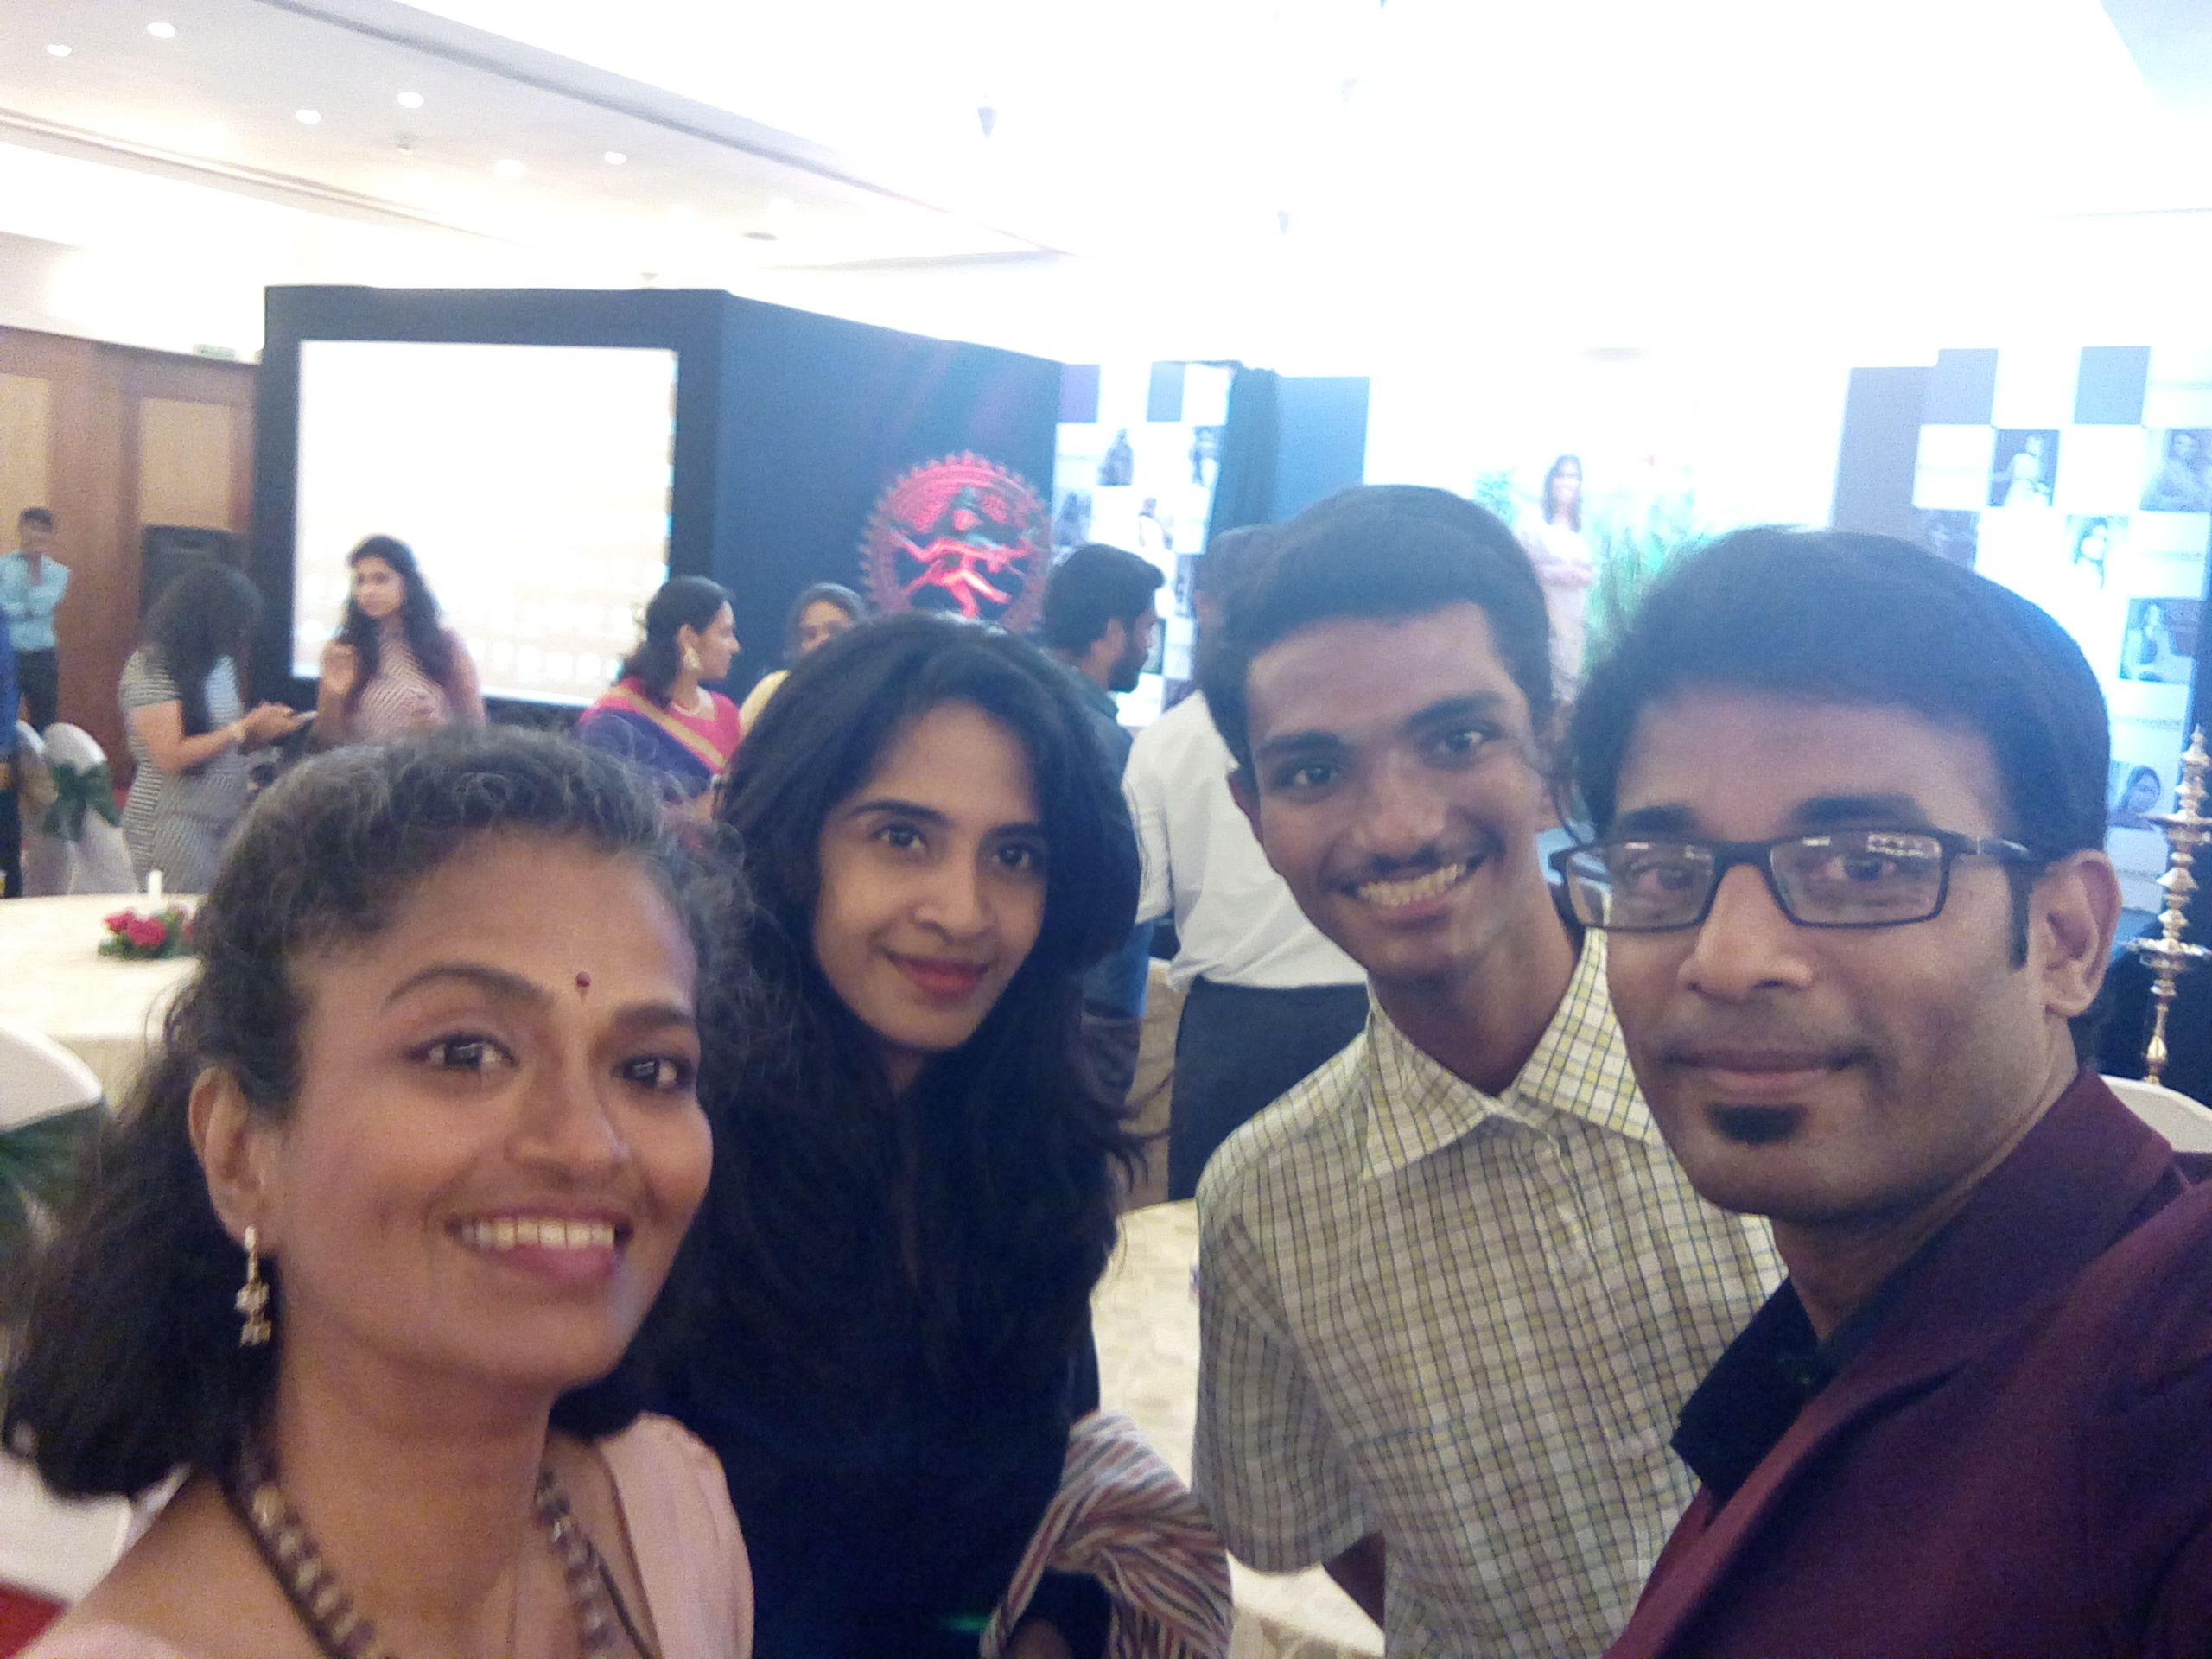 https://www.facebook.com/ThamizhRK/posts/10153622327076872?pnref=story  New Role at a Great Event (y)  Wonderful efficient team to work with <3  Happy to be a part of this event. :) :D Grand start for the Fiscal year 2016. _/\_ More info  More info here : http://emceethamizh.com/new-role-events-celebrity-assistance-womanation-magazine-launch-chennai/ #Womanation #Magazine #Launch #Chennai